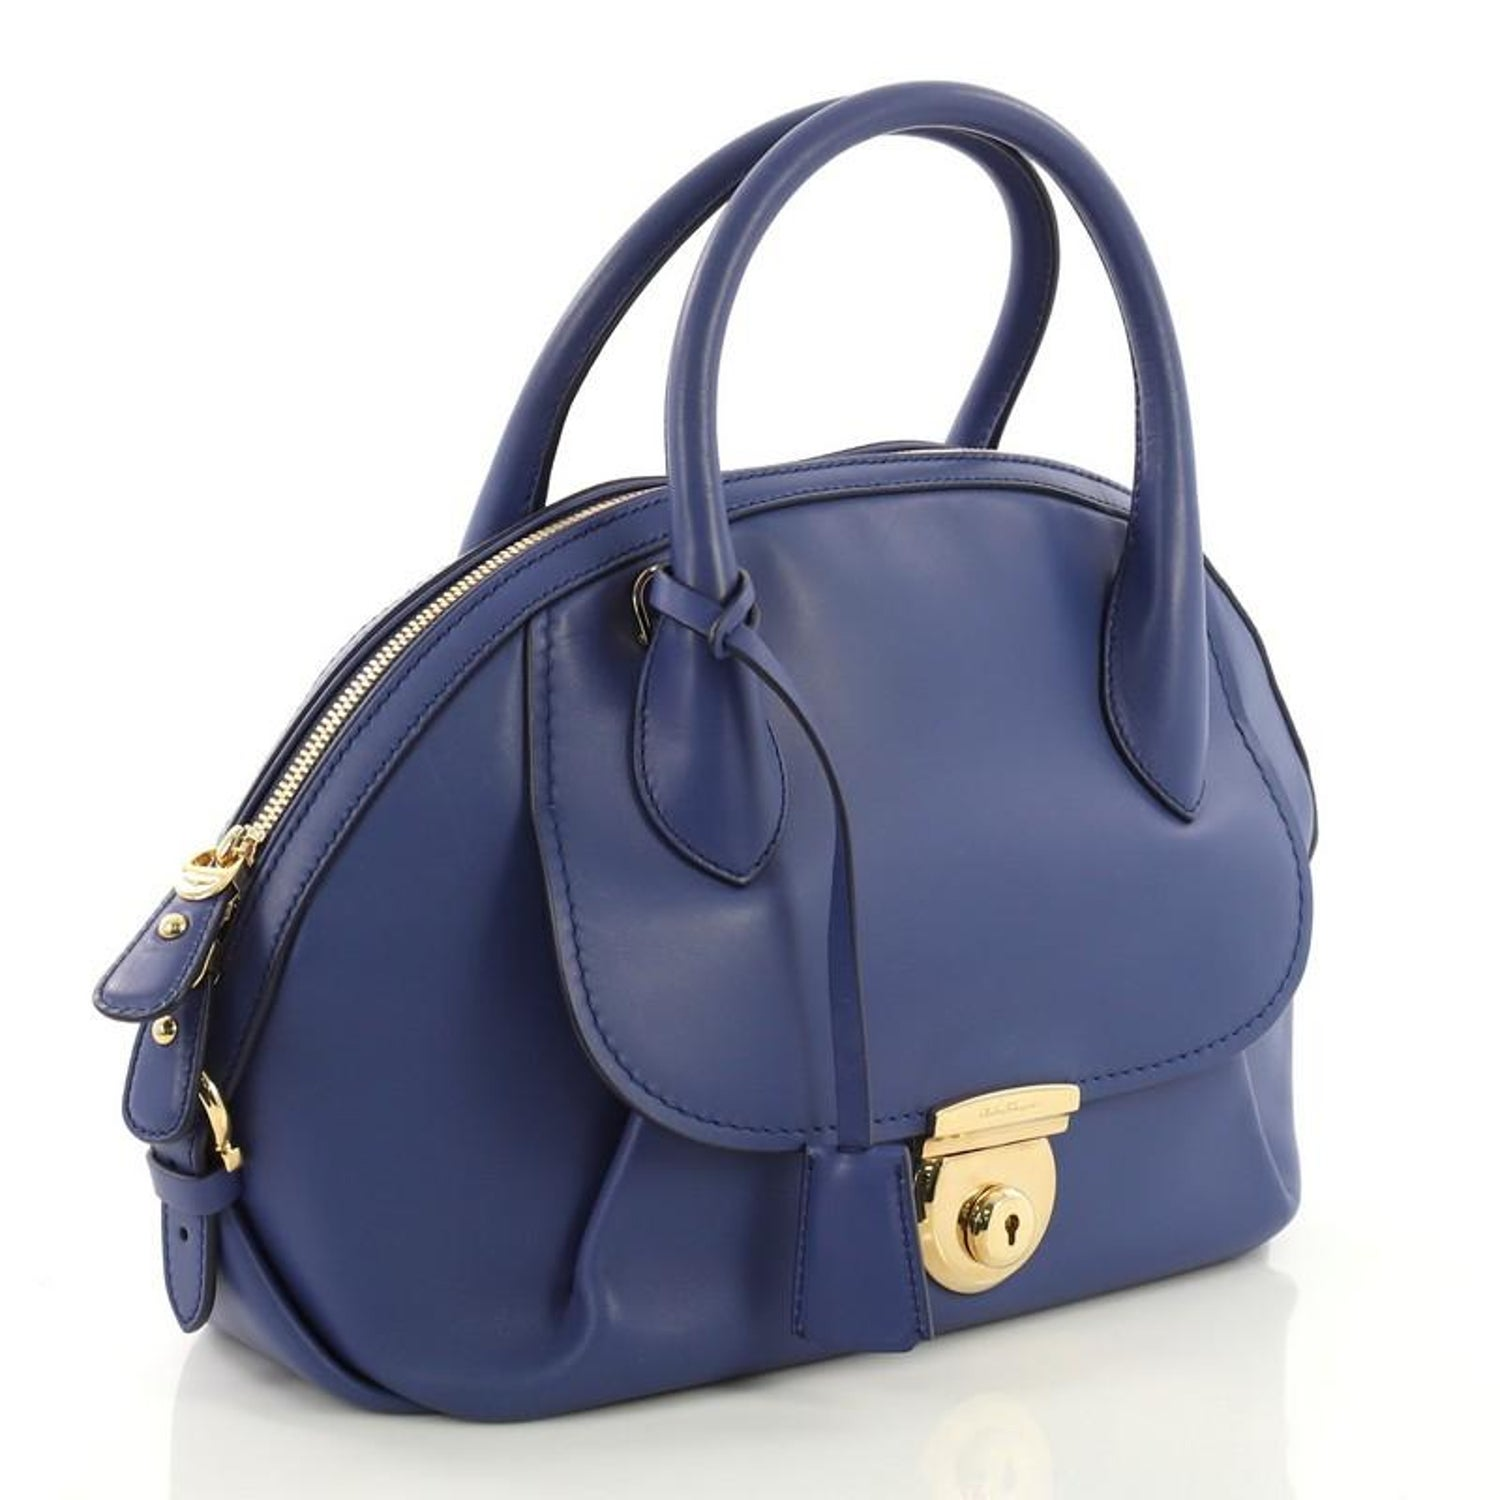 2a1eac2bc9 Salvatore Ferragamo Fiamma Satchel Leather Medium For Sale at 1stdibs